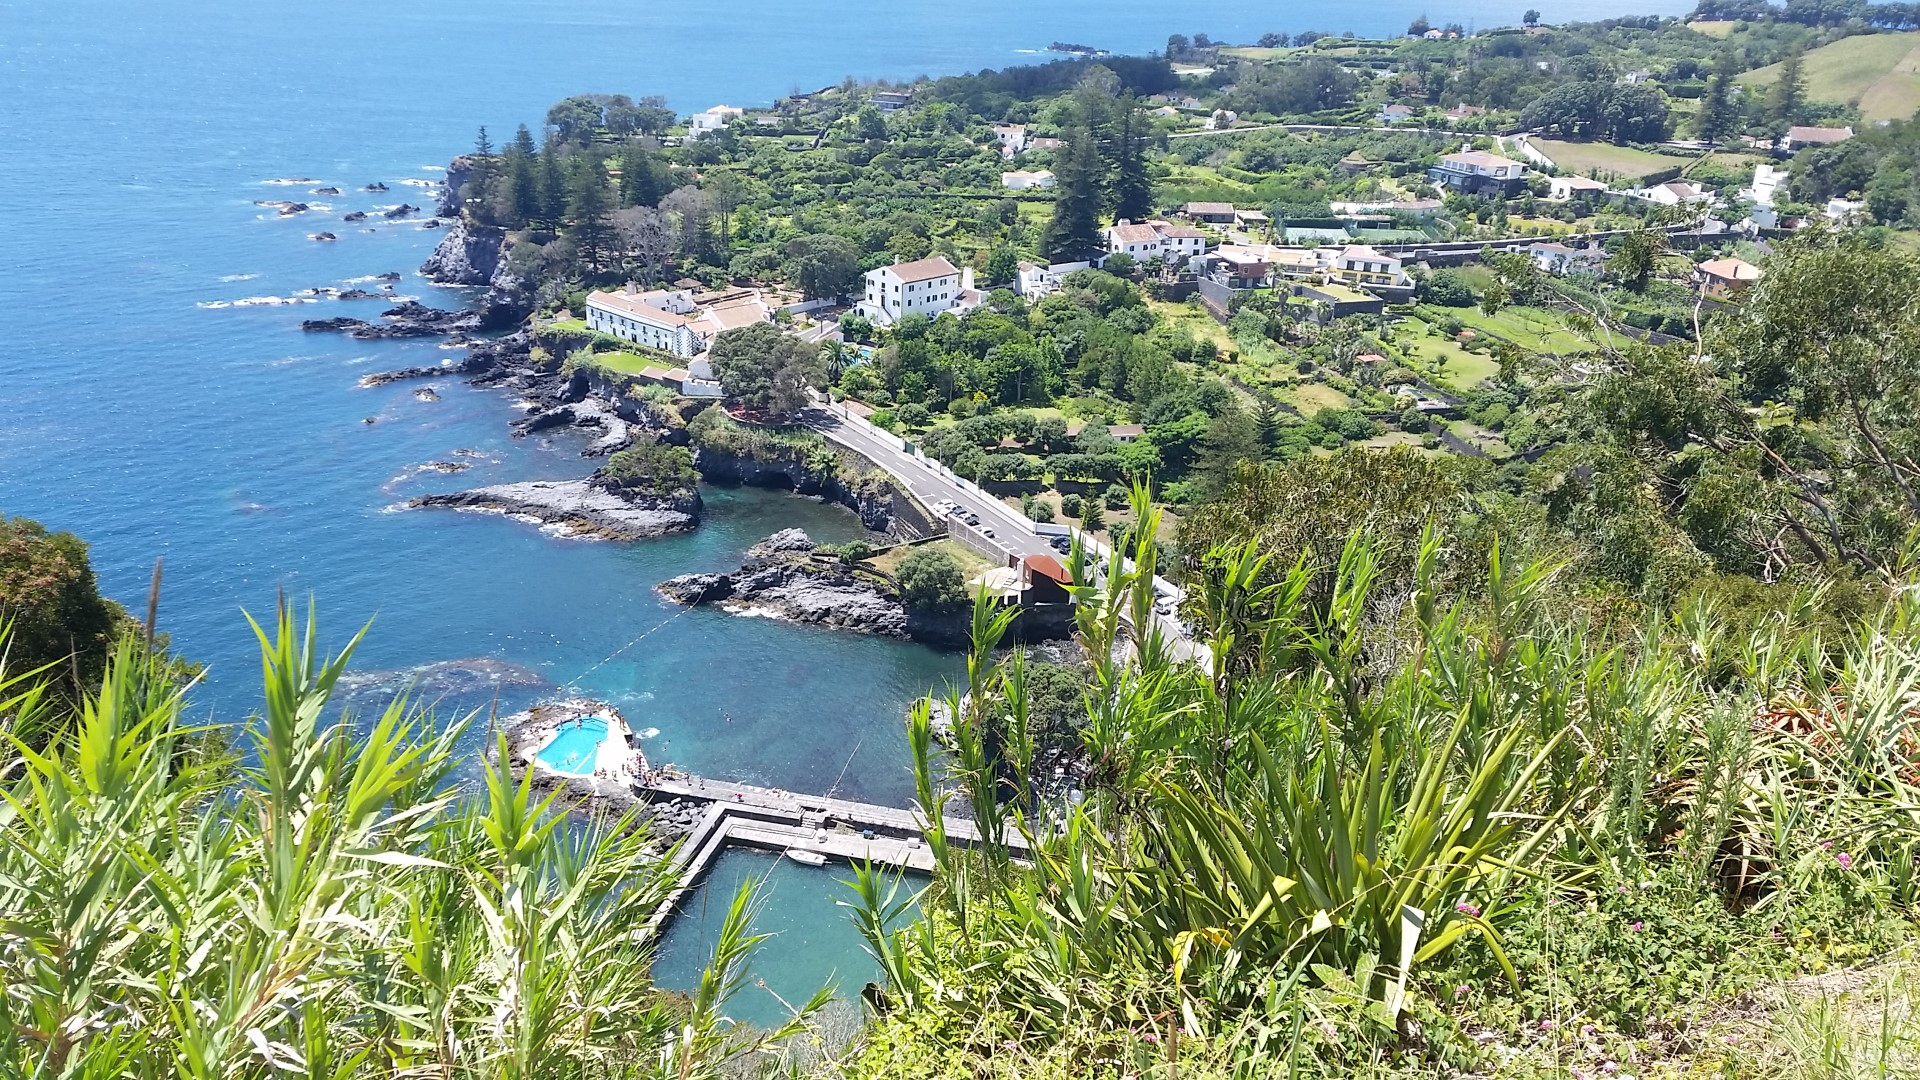 Caloura viewpoint